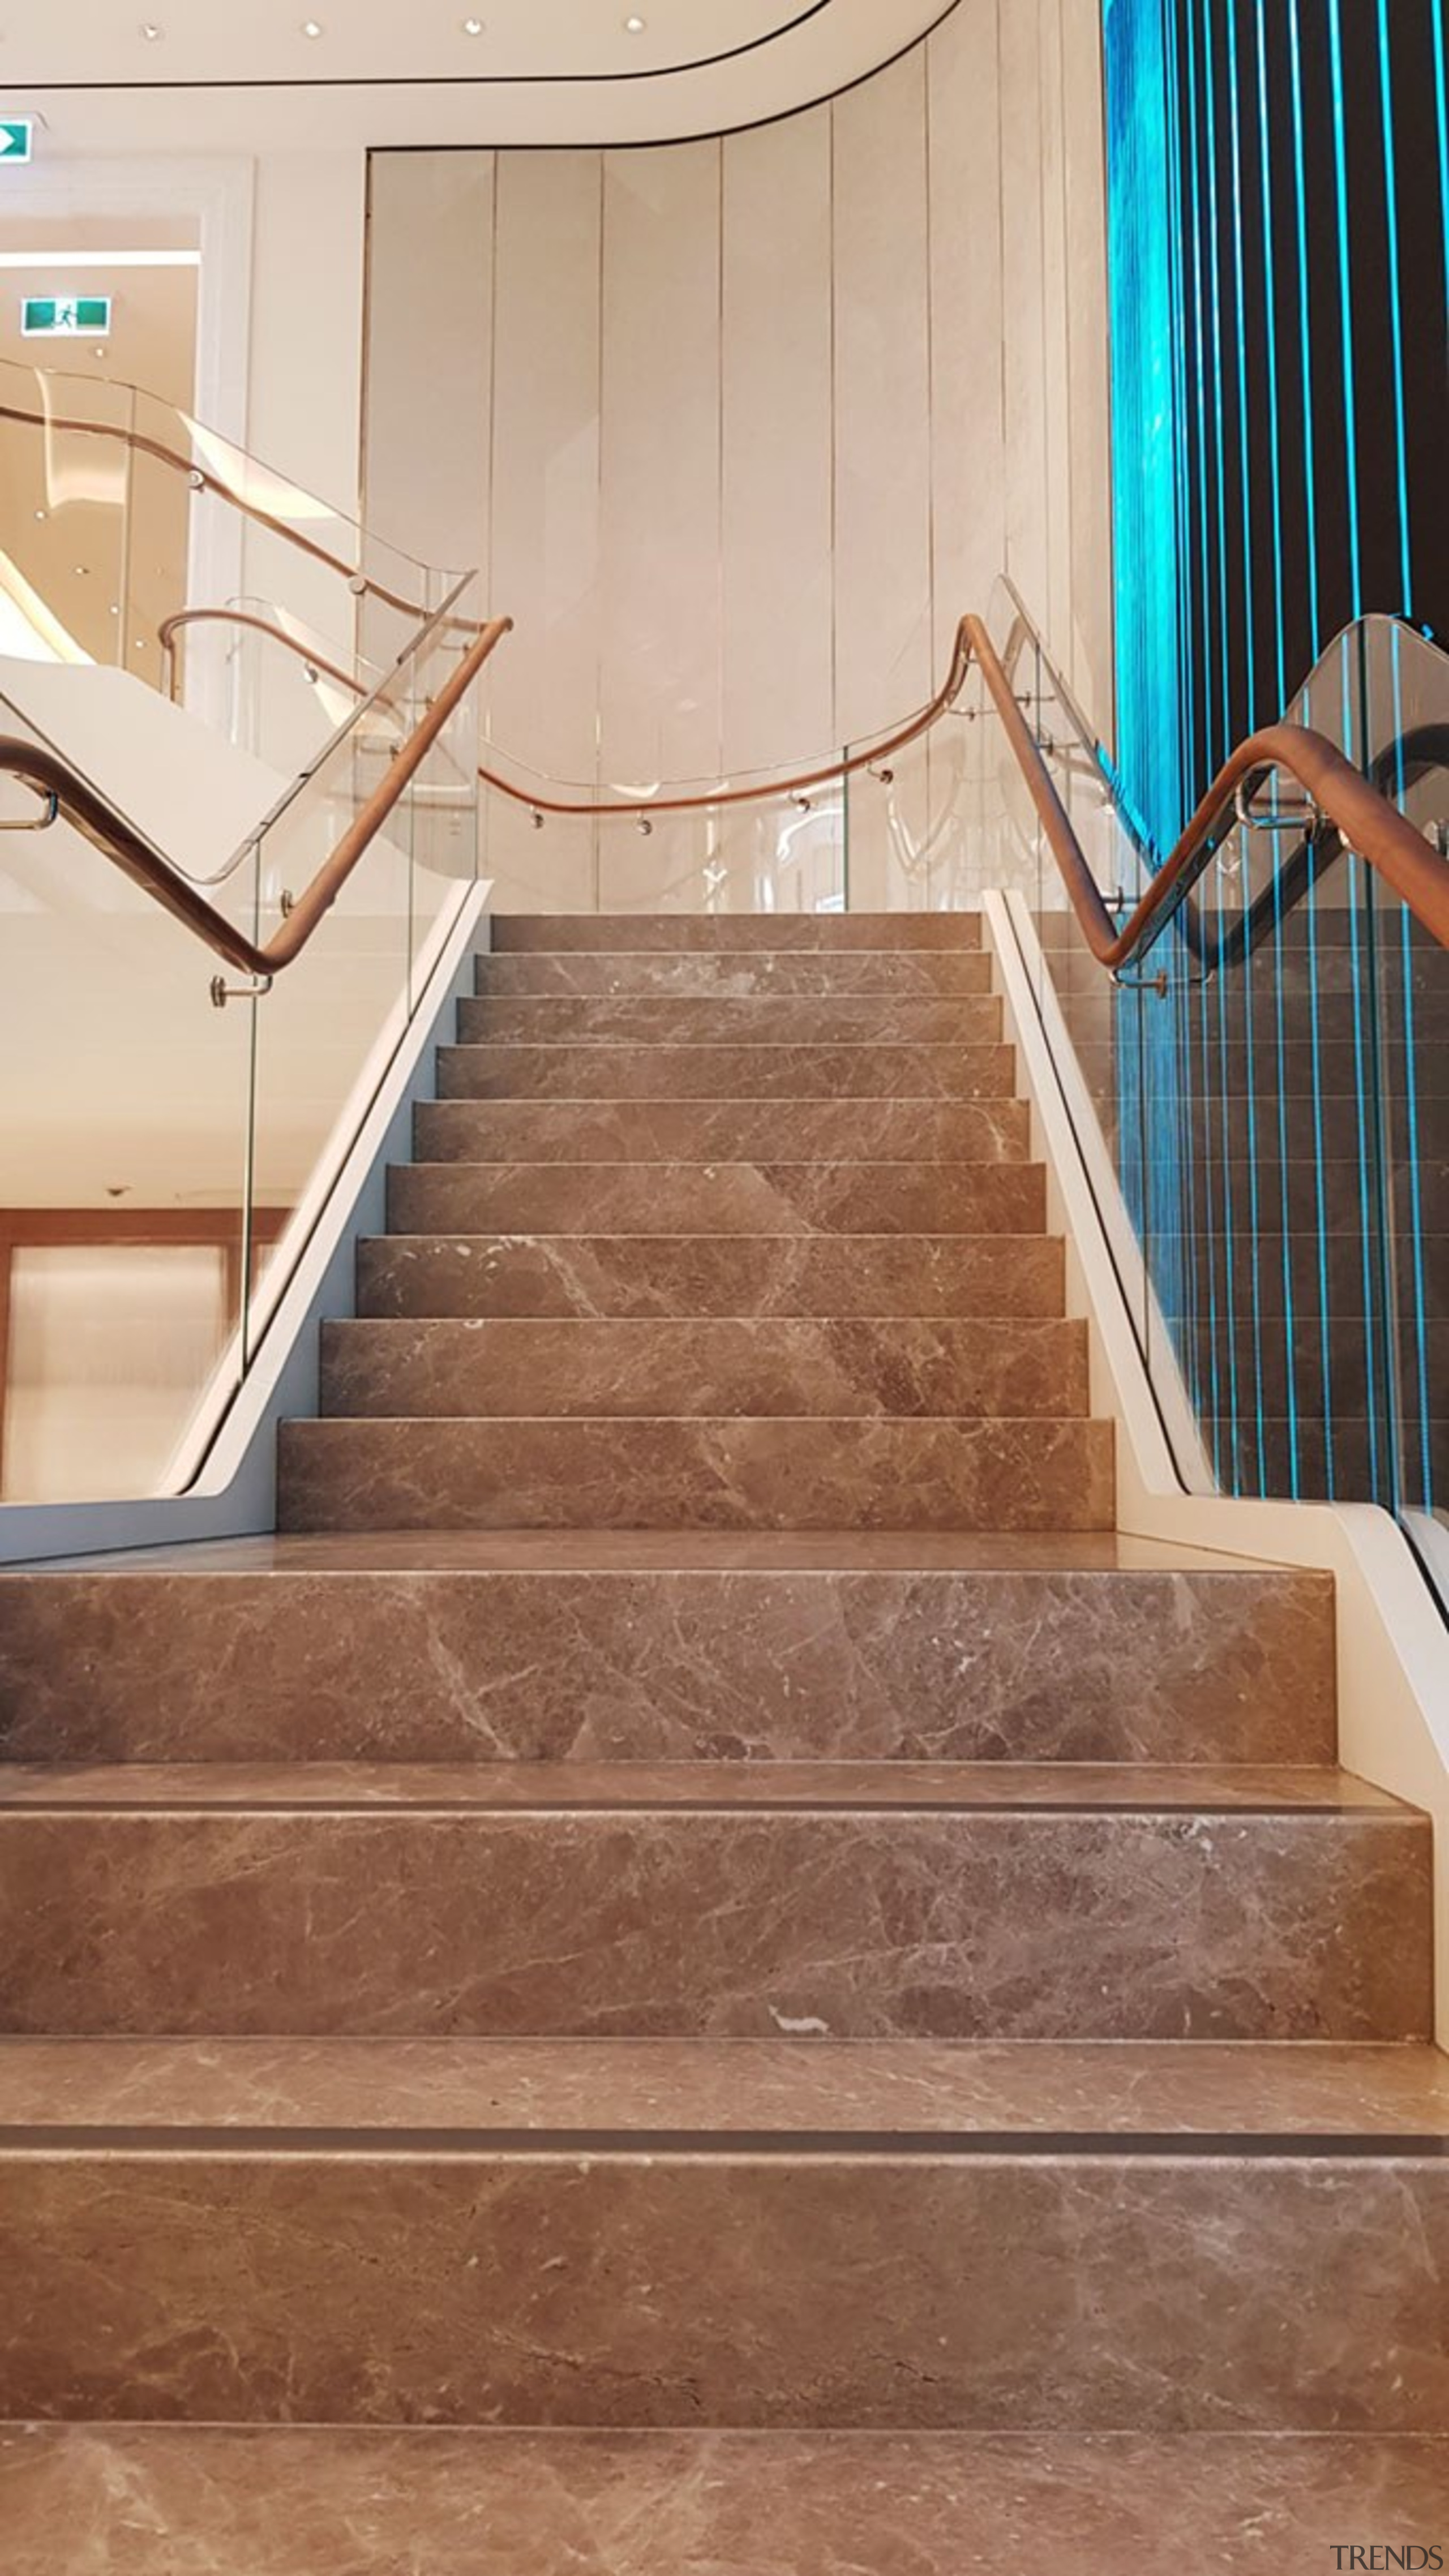 Tiffany Co Sydney 6 - architecture | baluster architecture, baluster, building, daylighting, floor, flooring, glass, handrail, hardwood, home, interior design, line, property, real estate, room, stairs, tile, wood, wood flooring, brown, orange